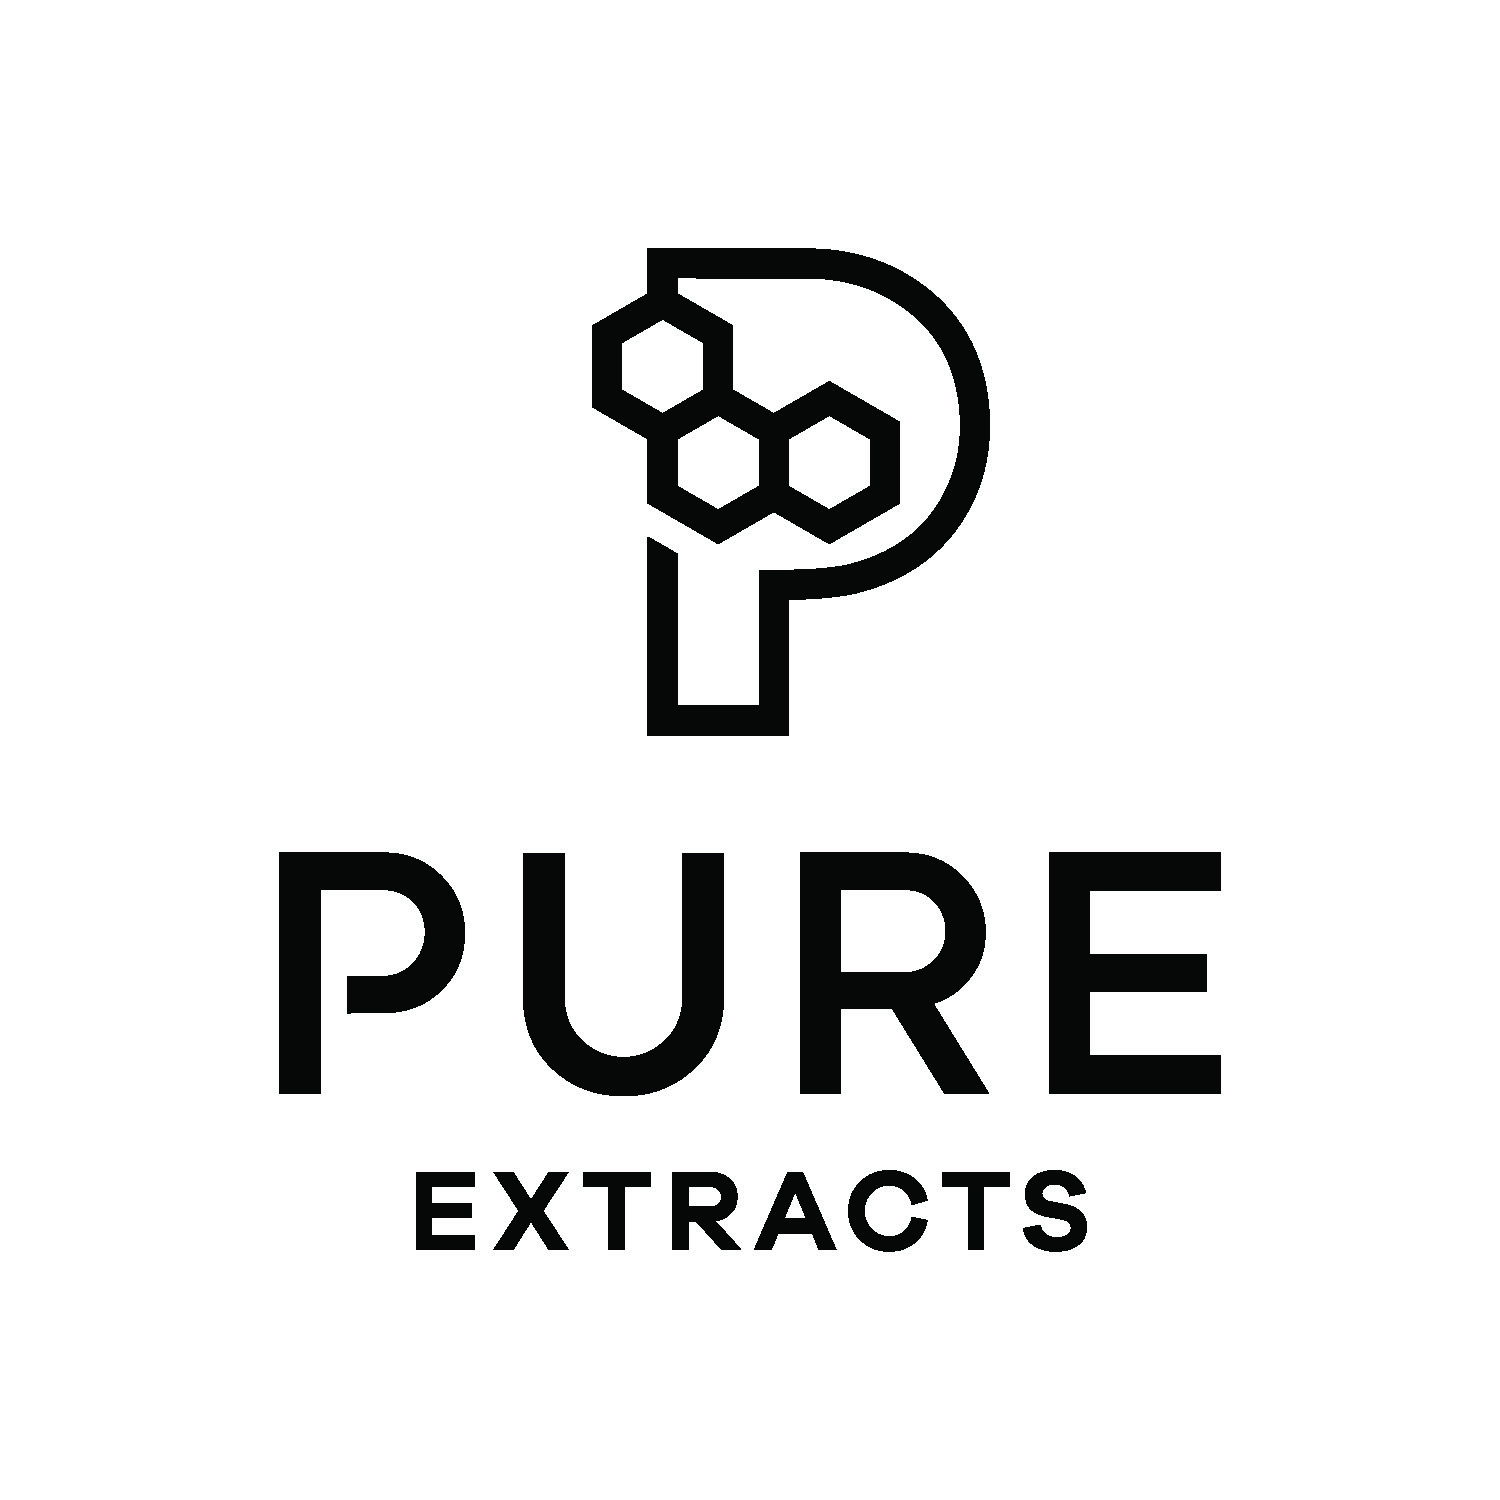 Pure Extracts Submits Dealer's Licence Application to Health Canada